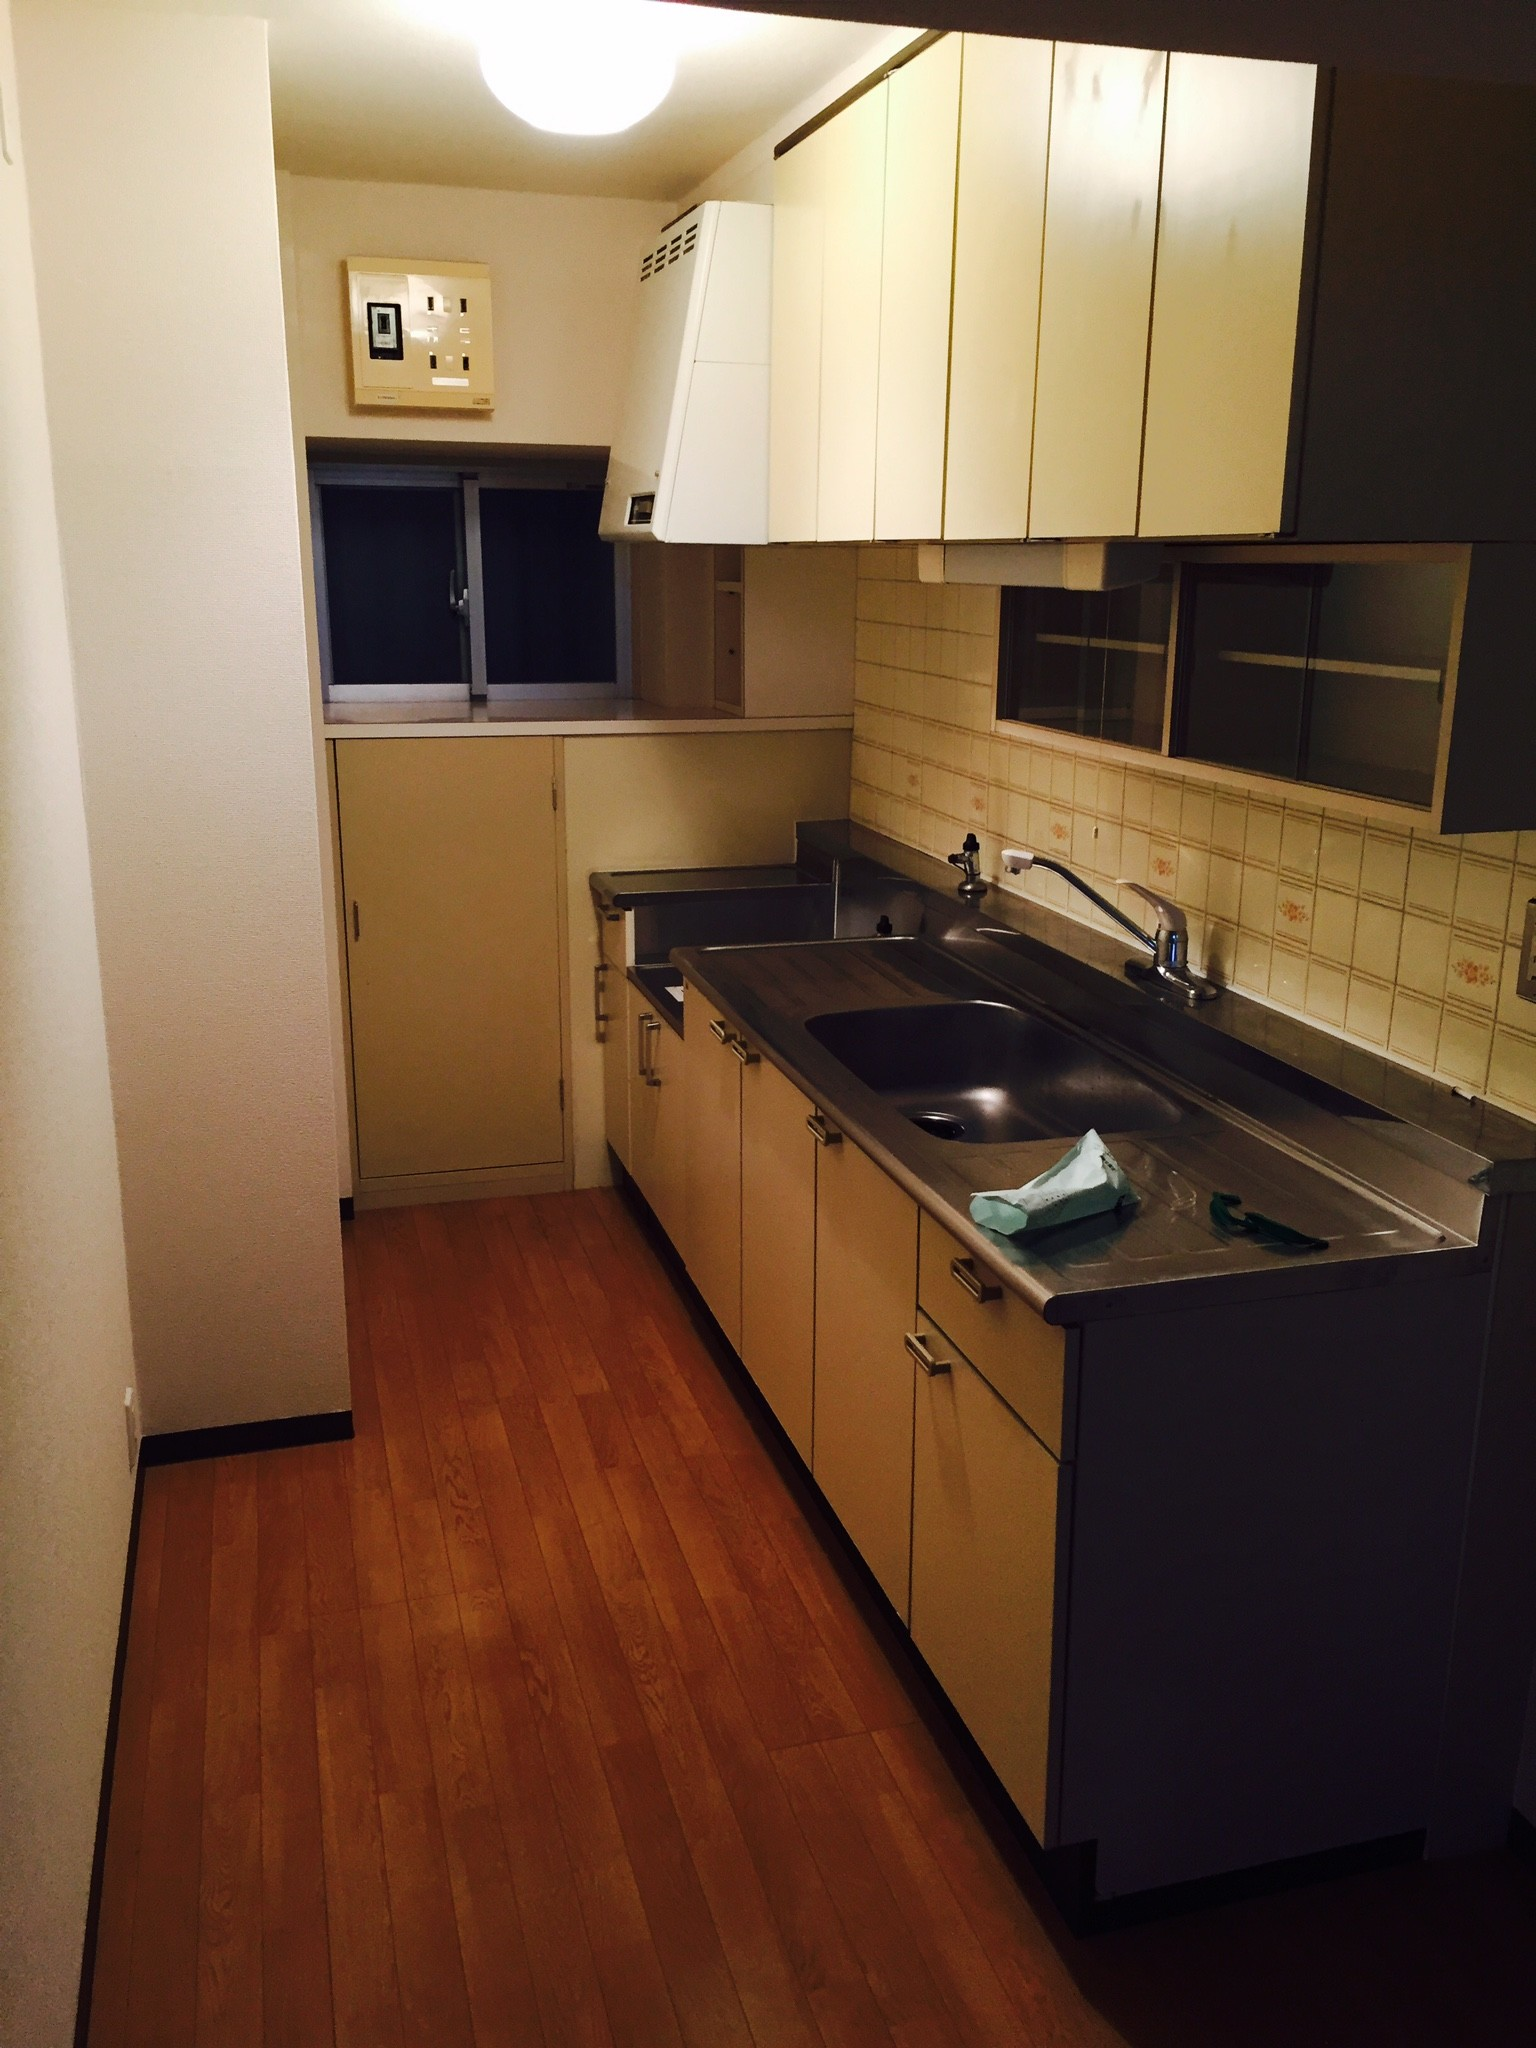 2LDK apartment, looking for female roommate (42500 yen ...